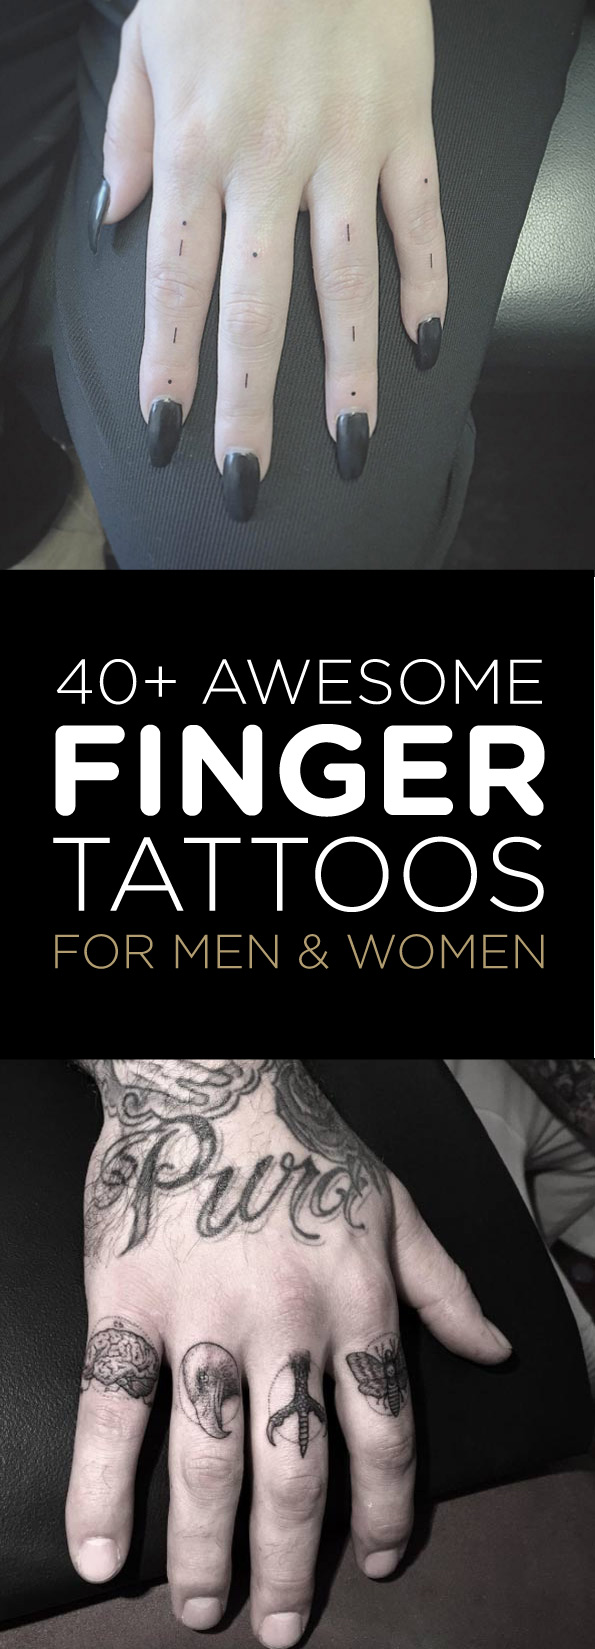 Finger Tattoo Schrift 40 Awesome Finger Tattoos For Men And Women Tattooblend